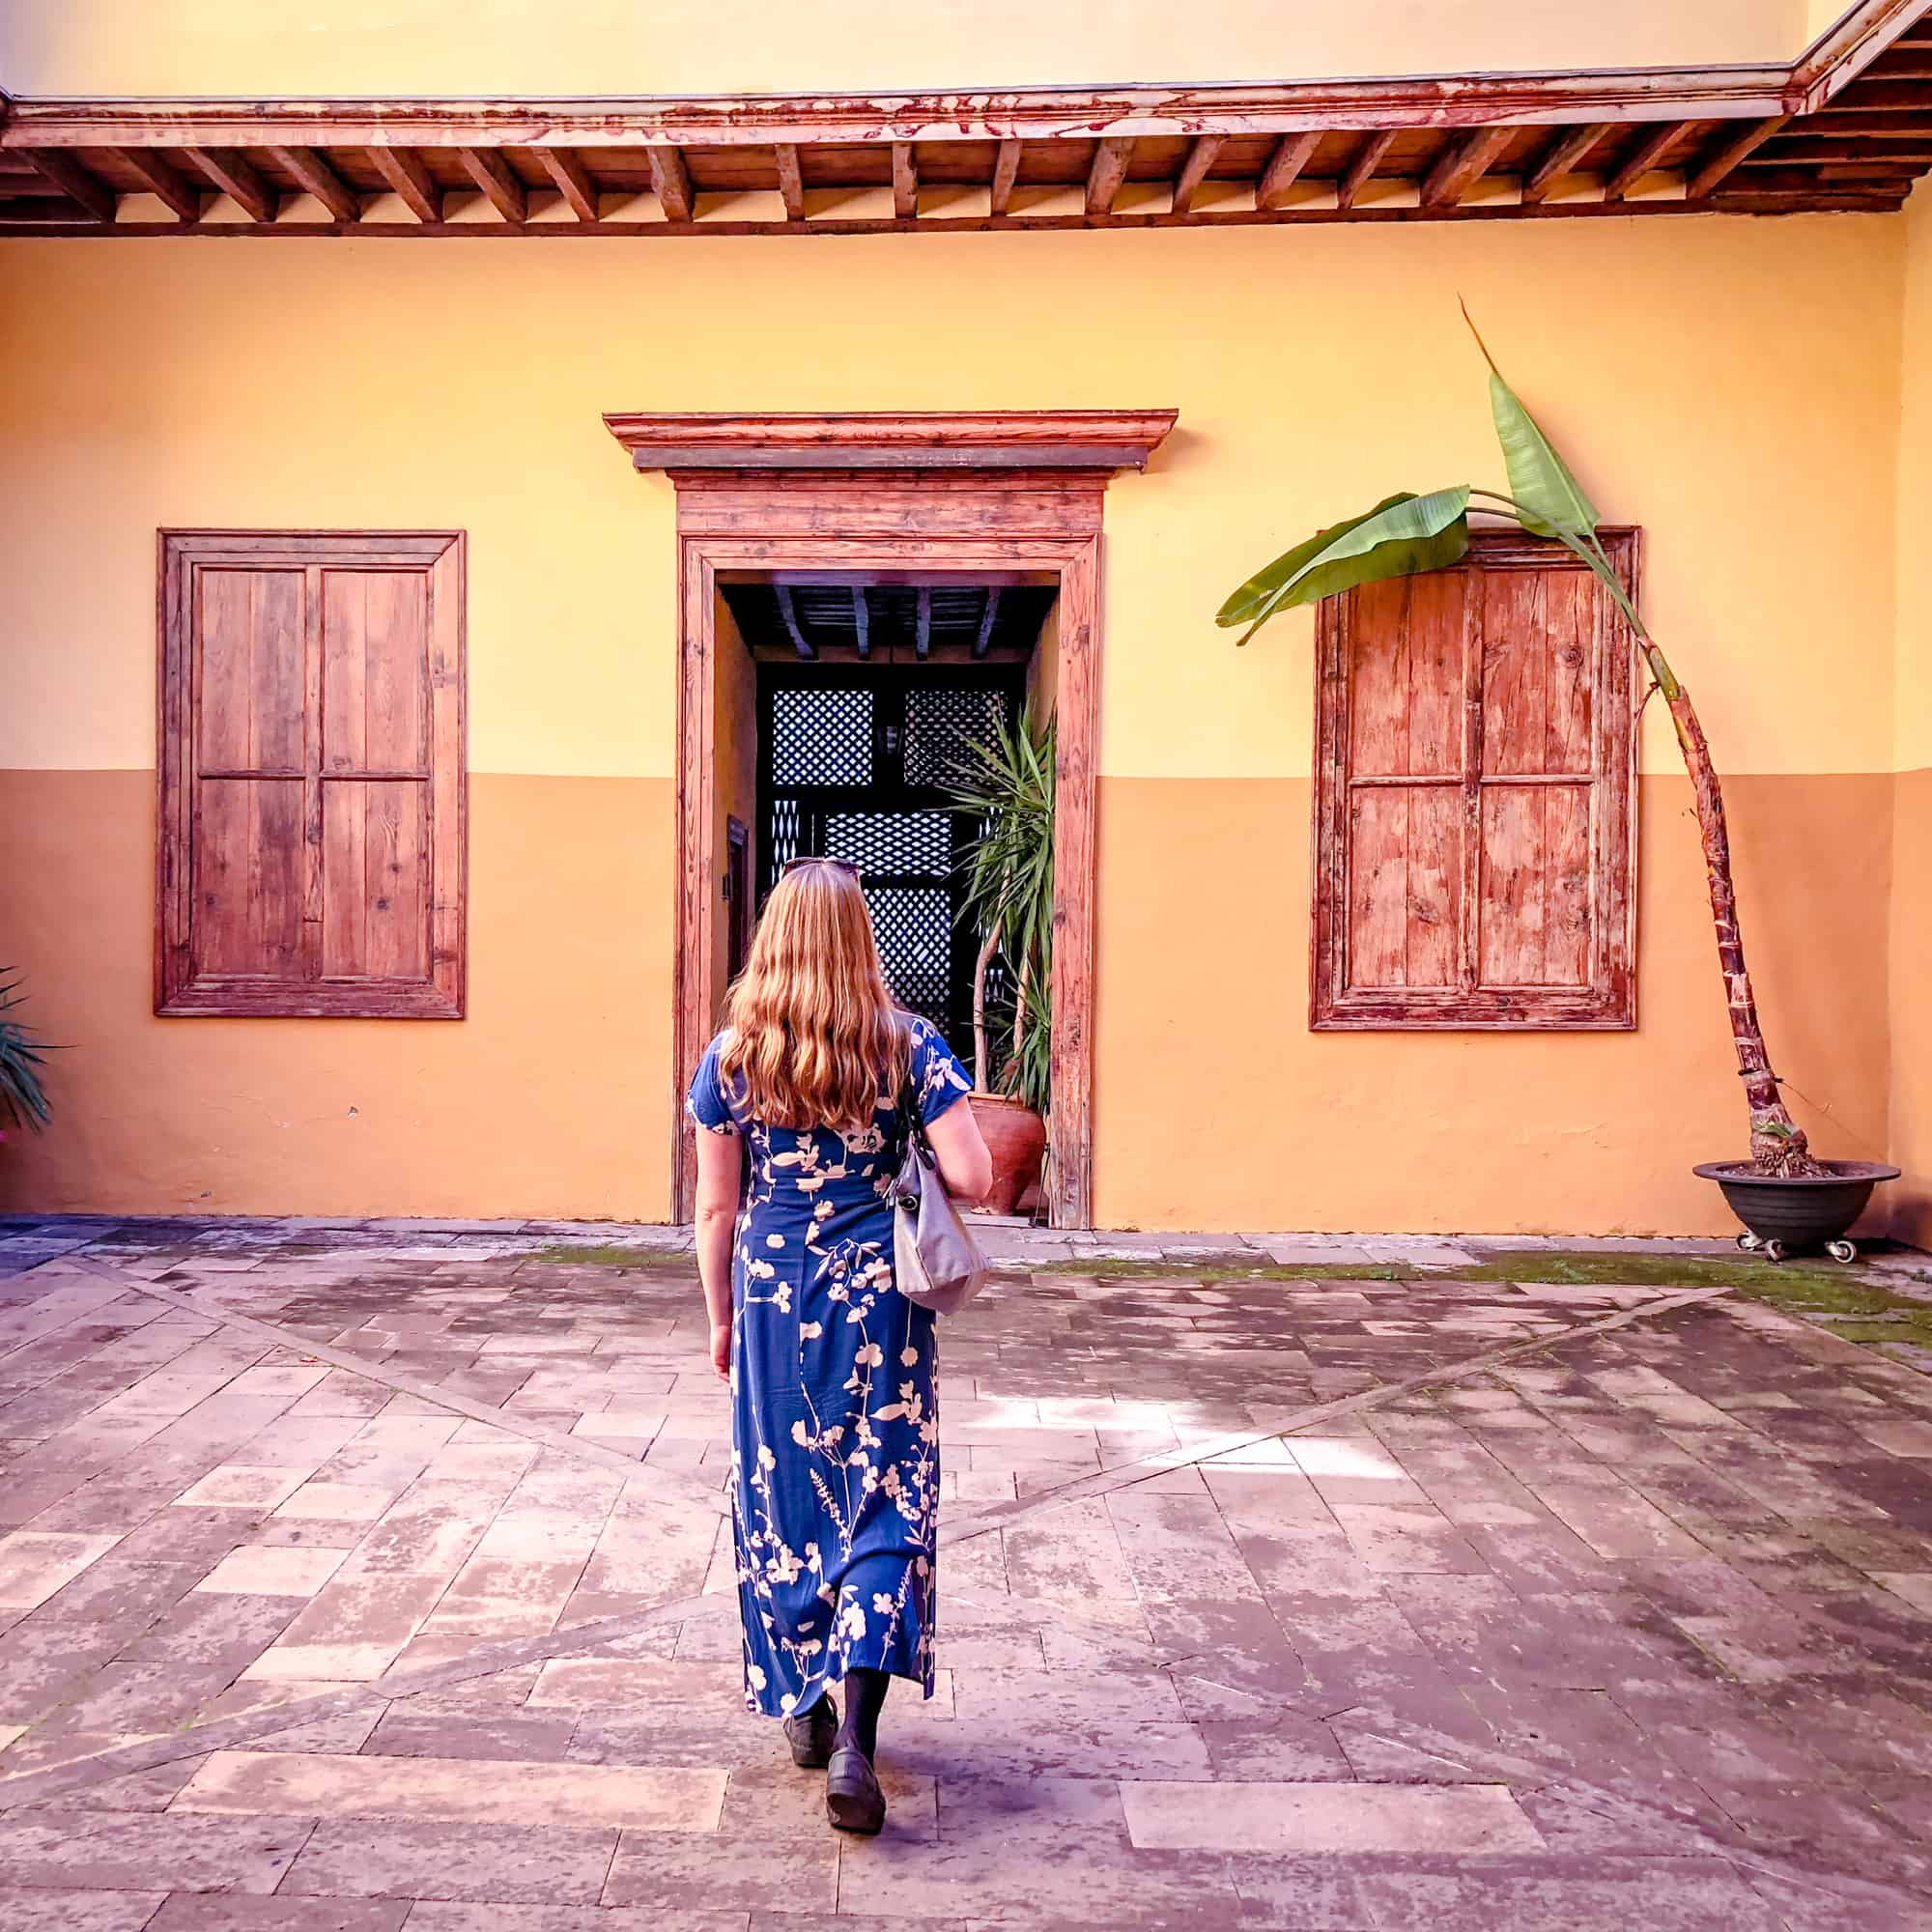 Questions about Spain- inside historical buildings in La Laguna in Tenerife, Canary Islands